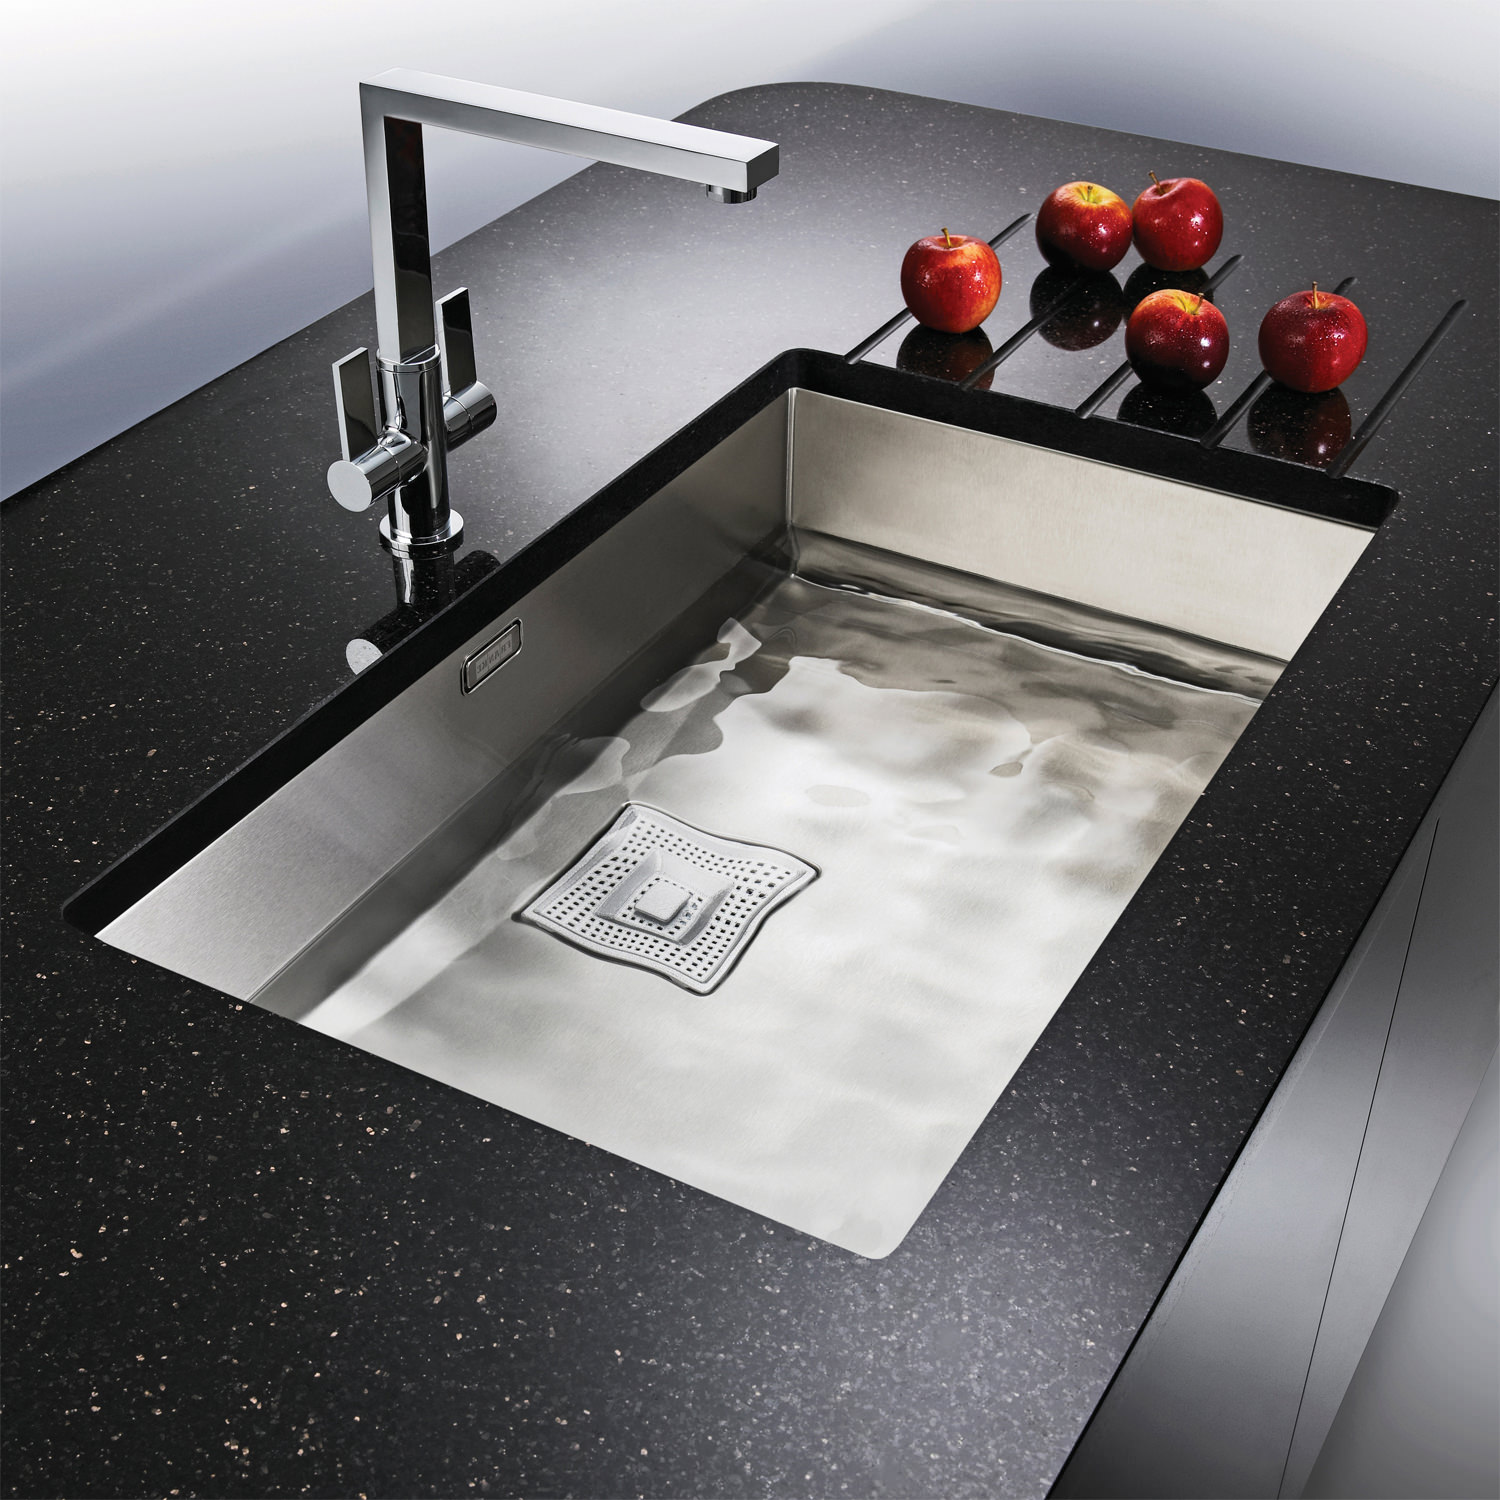 Franke Ss Sinks : ... of Franke Peak PKX 110 70 Stainless Steel 1.0 Bowl Undermount Sink